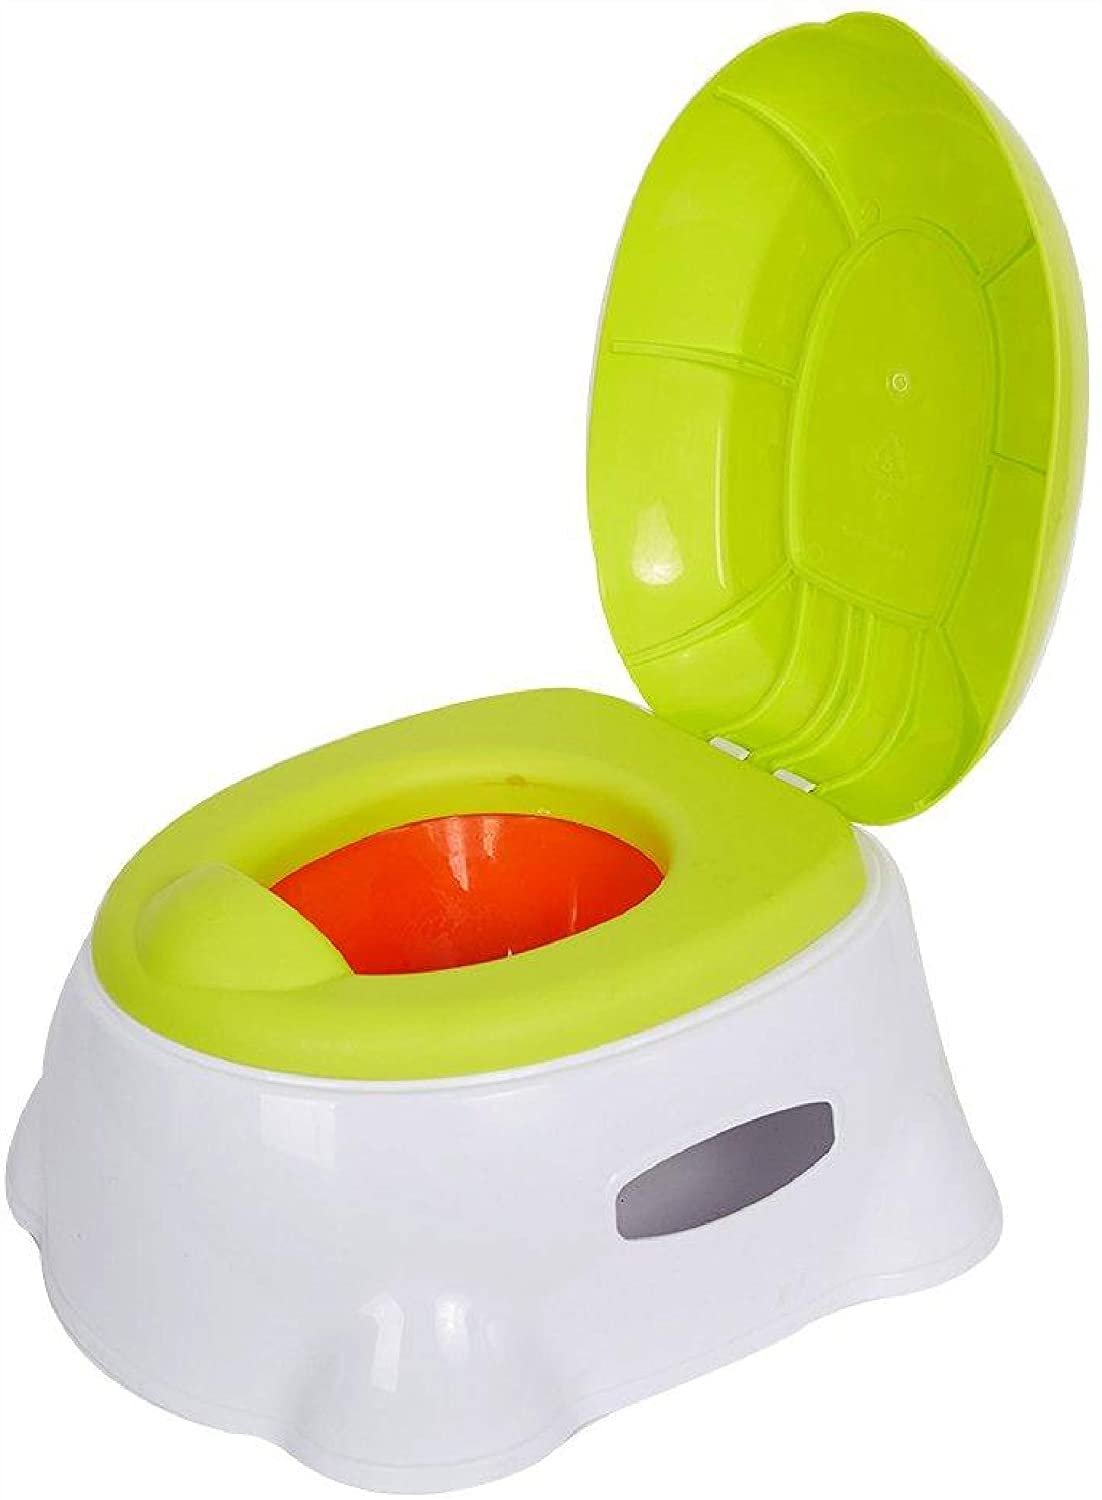 PROGLEAM 3 in 1 Step Stool Potty Traning Seat for 3 Months and Up Toddler Child